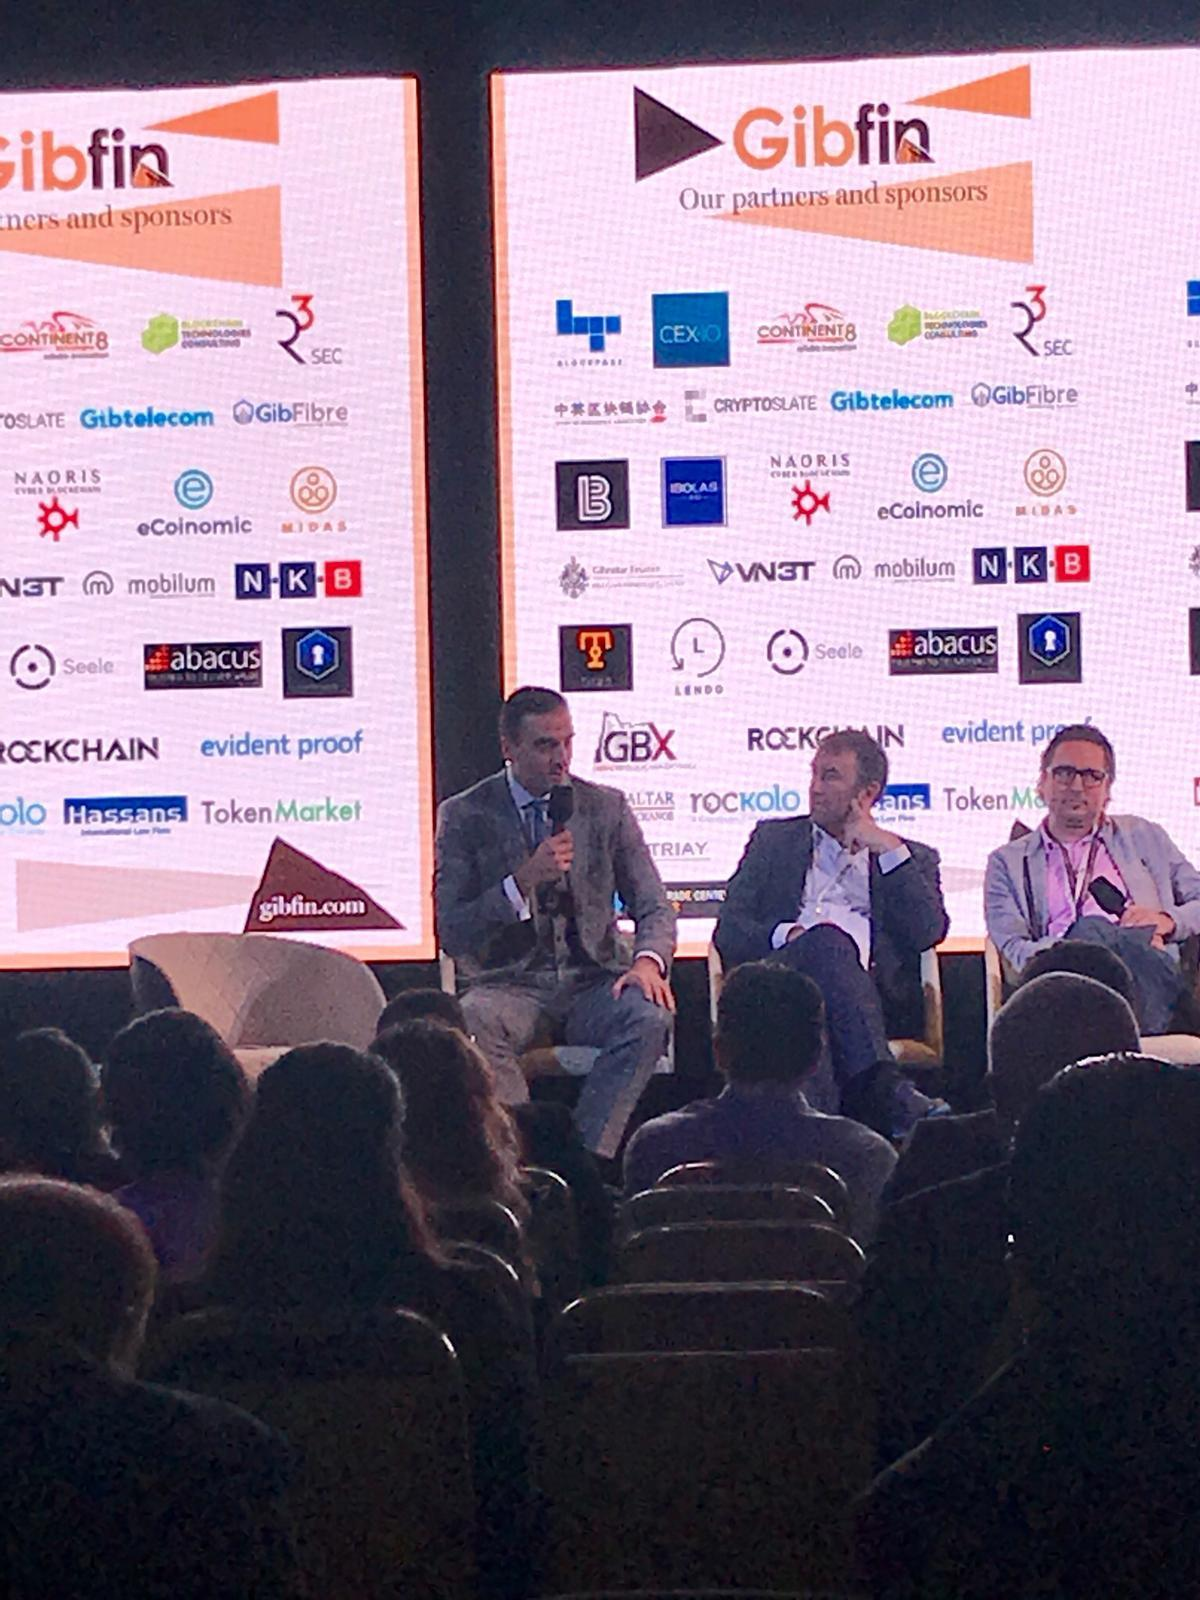 Digital Asset Management participates in GibFin Forum 2018